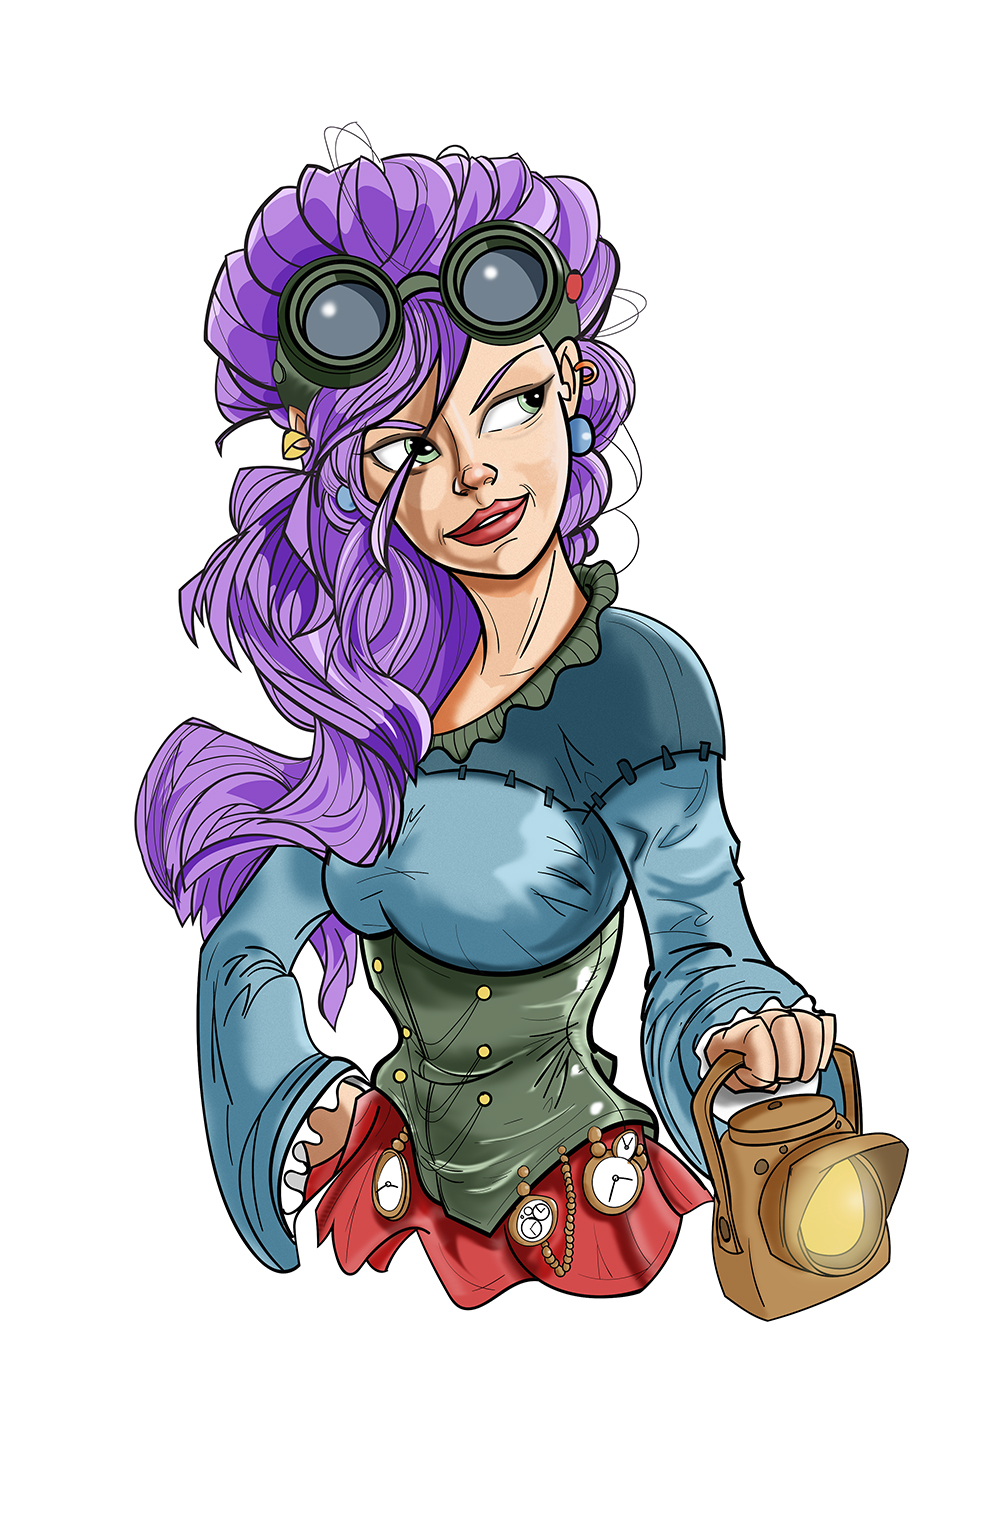 Character Design Hairstyles : Steampunk character design hairstyle by pencilbags on